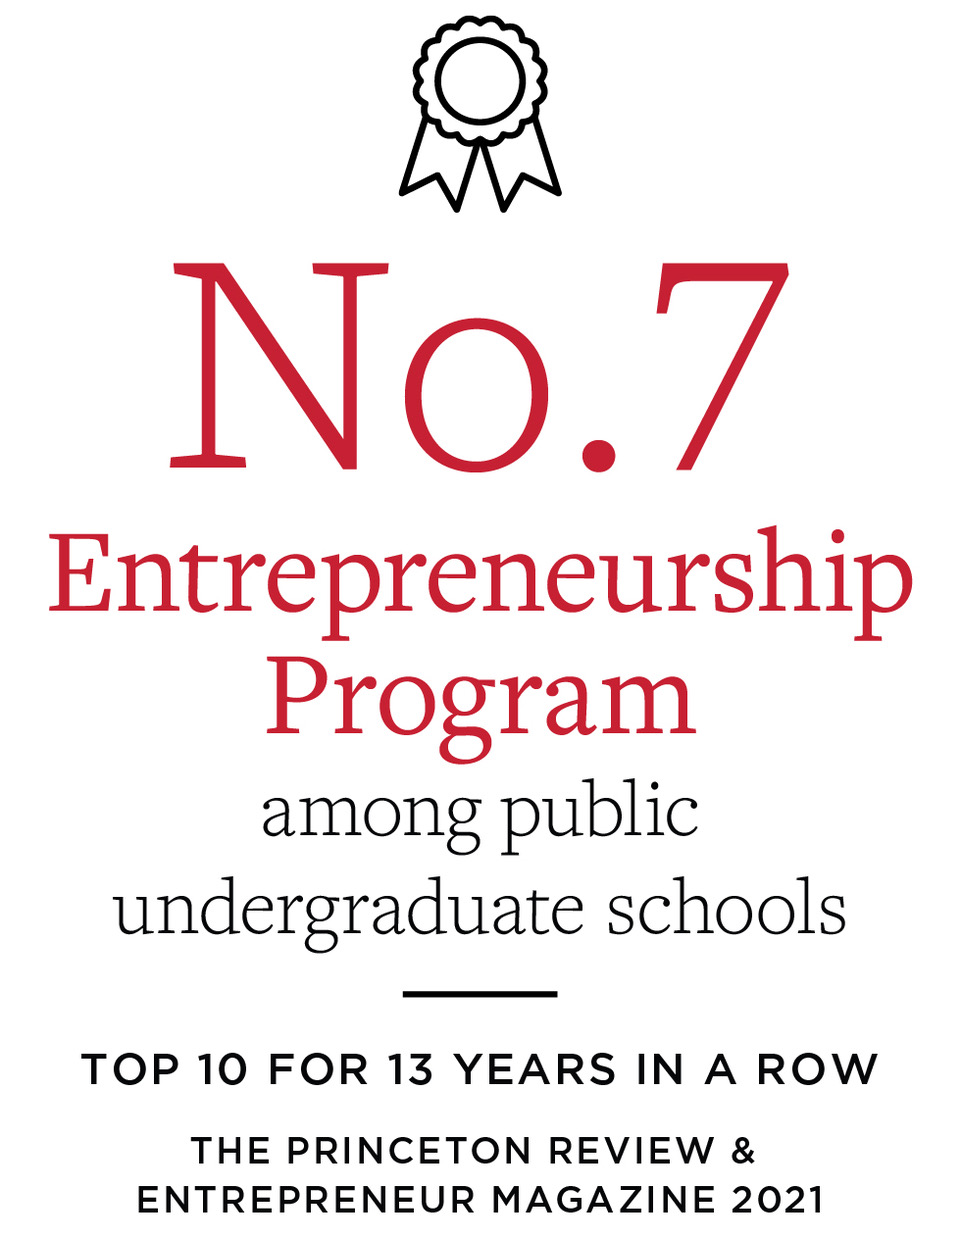 Entrepreneurship ranked No. 5 among public institutions by Princeton Review